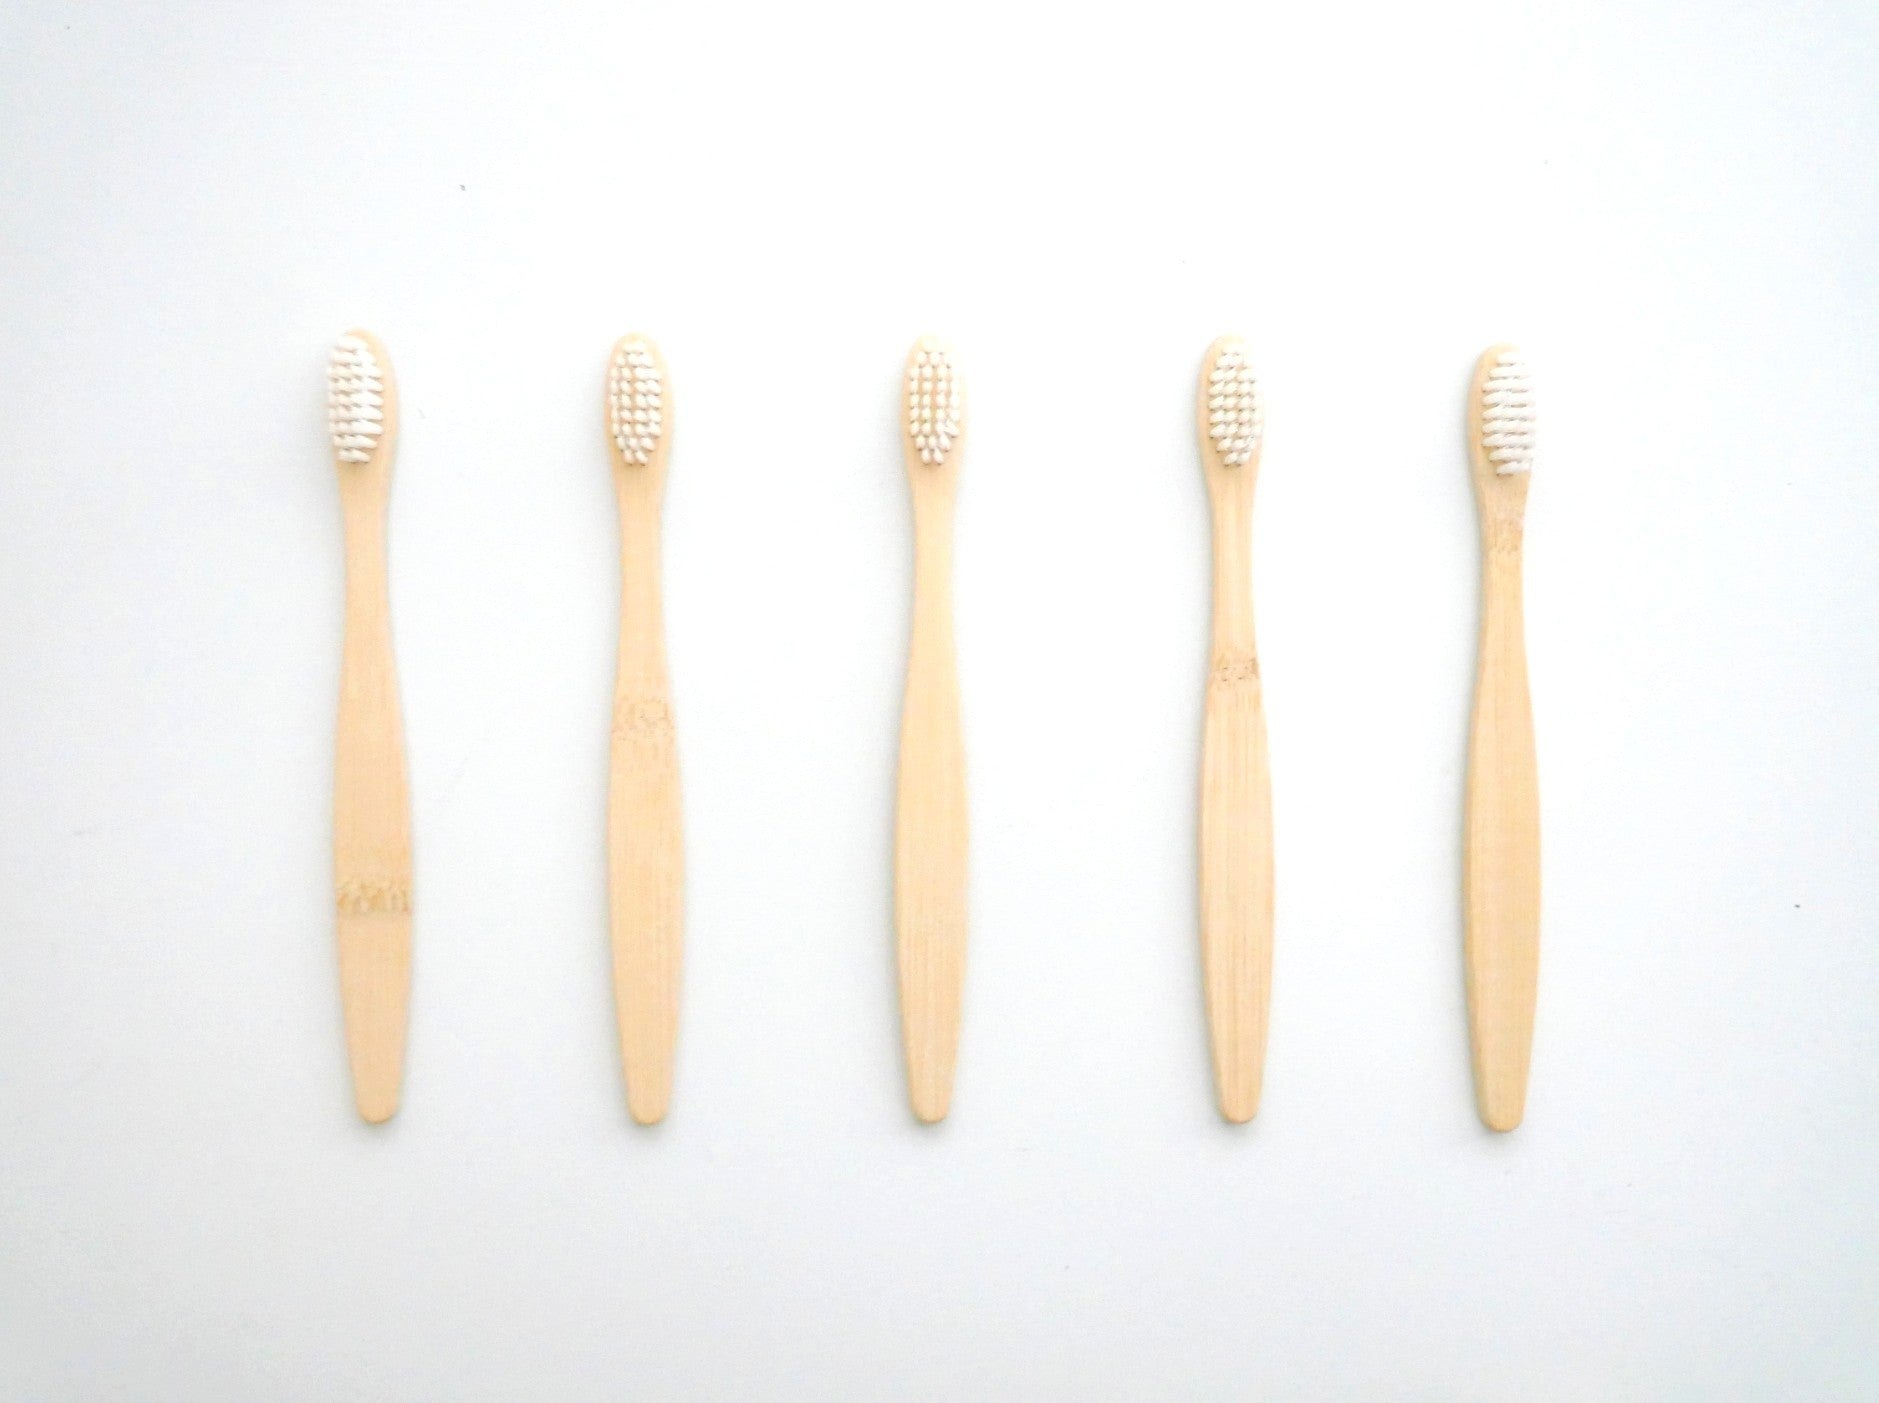 Small Bamboo Toothbrush (5 Pack)